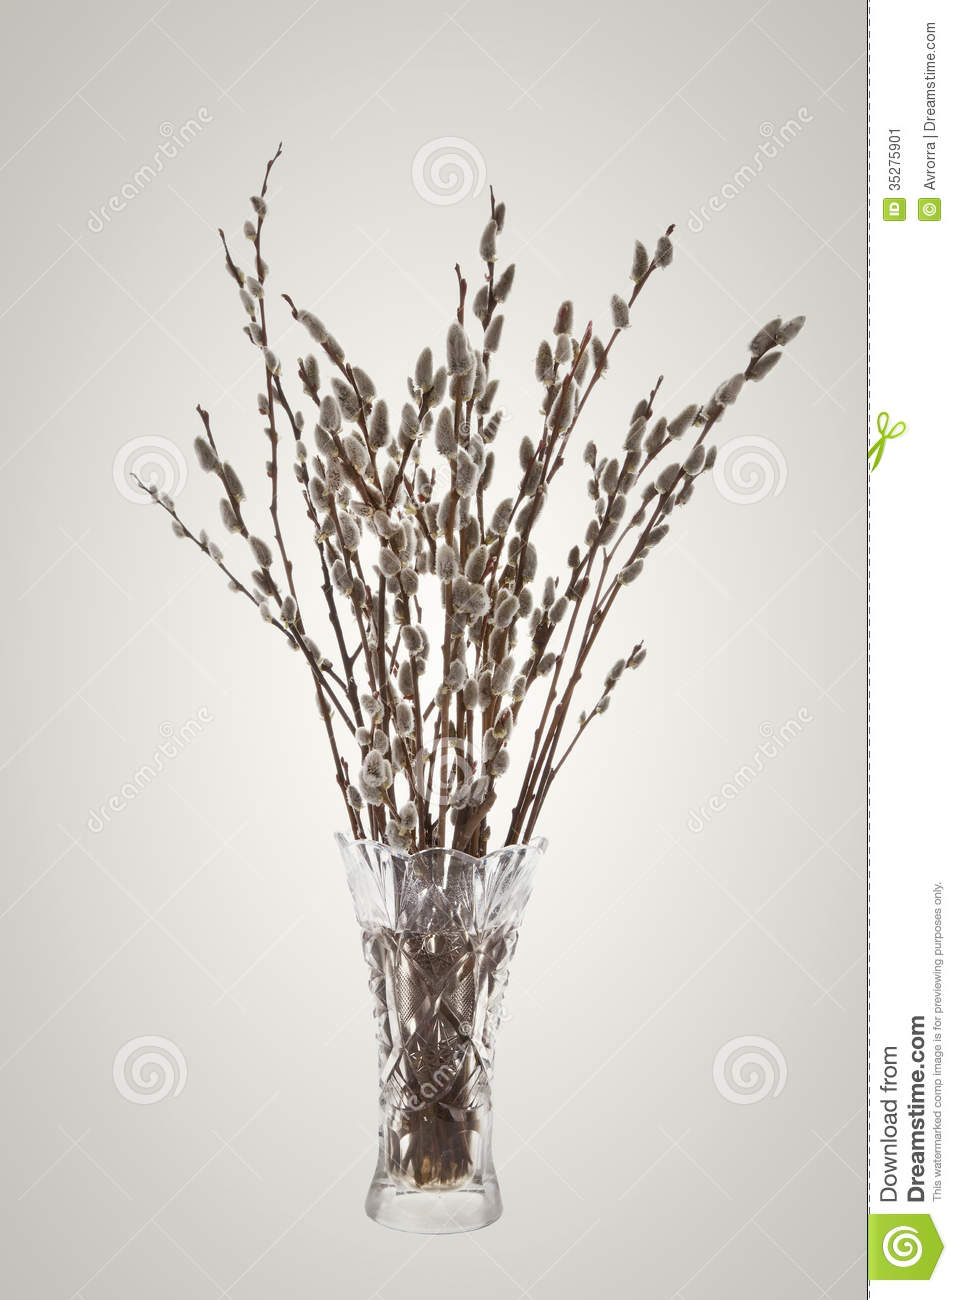 branches of the pussy willow with flowering bud in vase. Black Bedroom Furniture Sets. Home Design Ideas